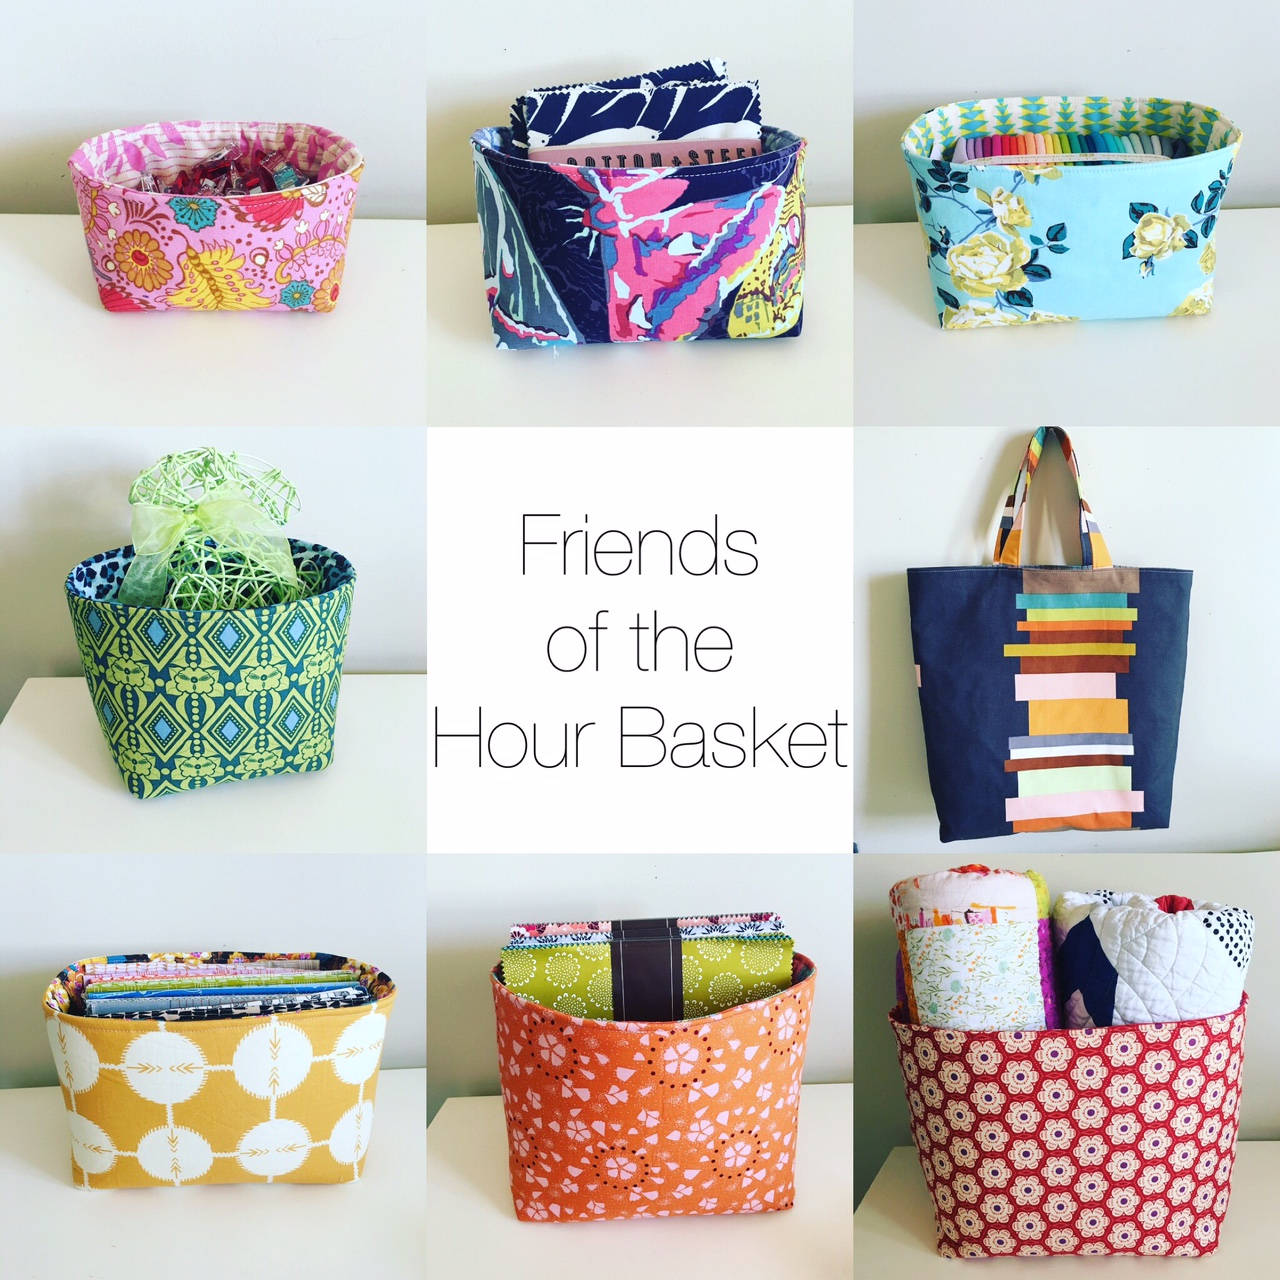 Hearts u0026 Bees Patterns  sc 1 st  Kelbysews & kelbysews: Friends of the Hour Basket